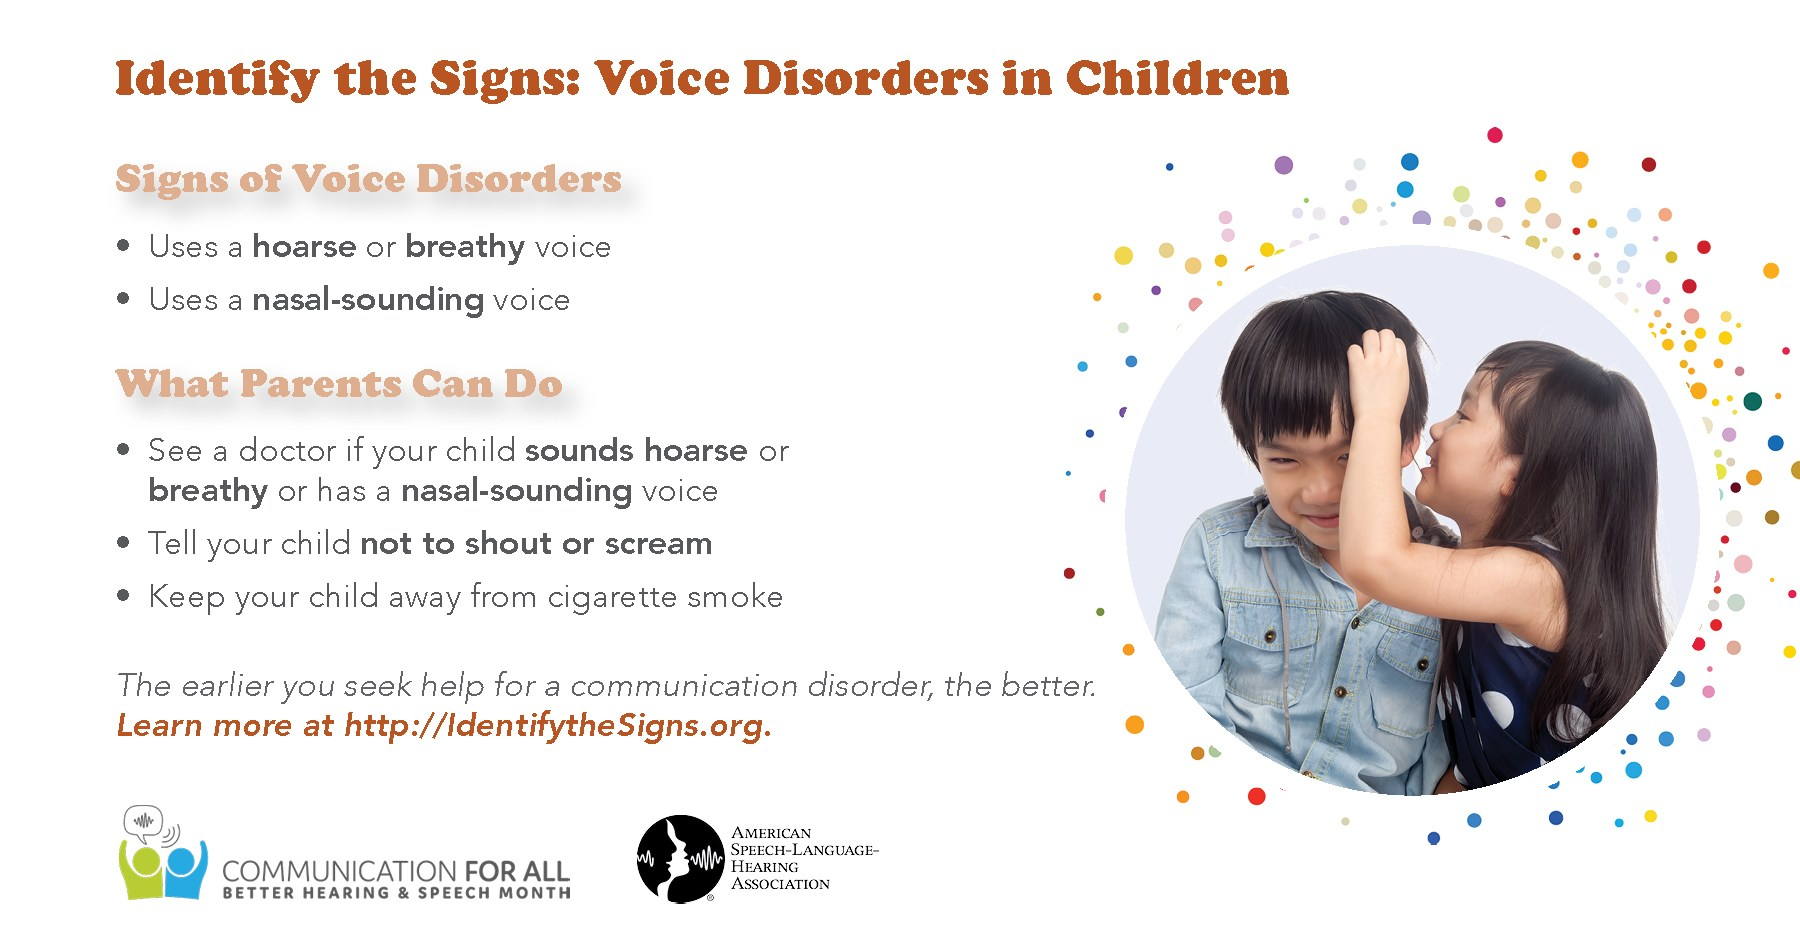 Identify-Signs-Voice-Disorders.jpg